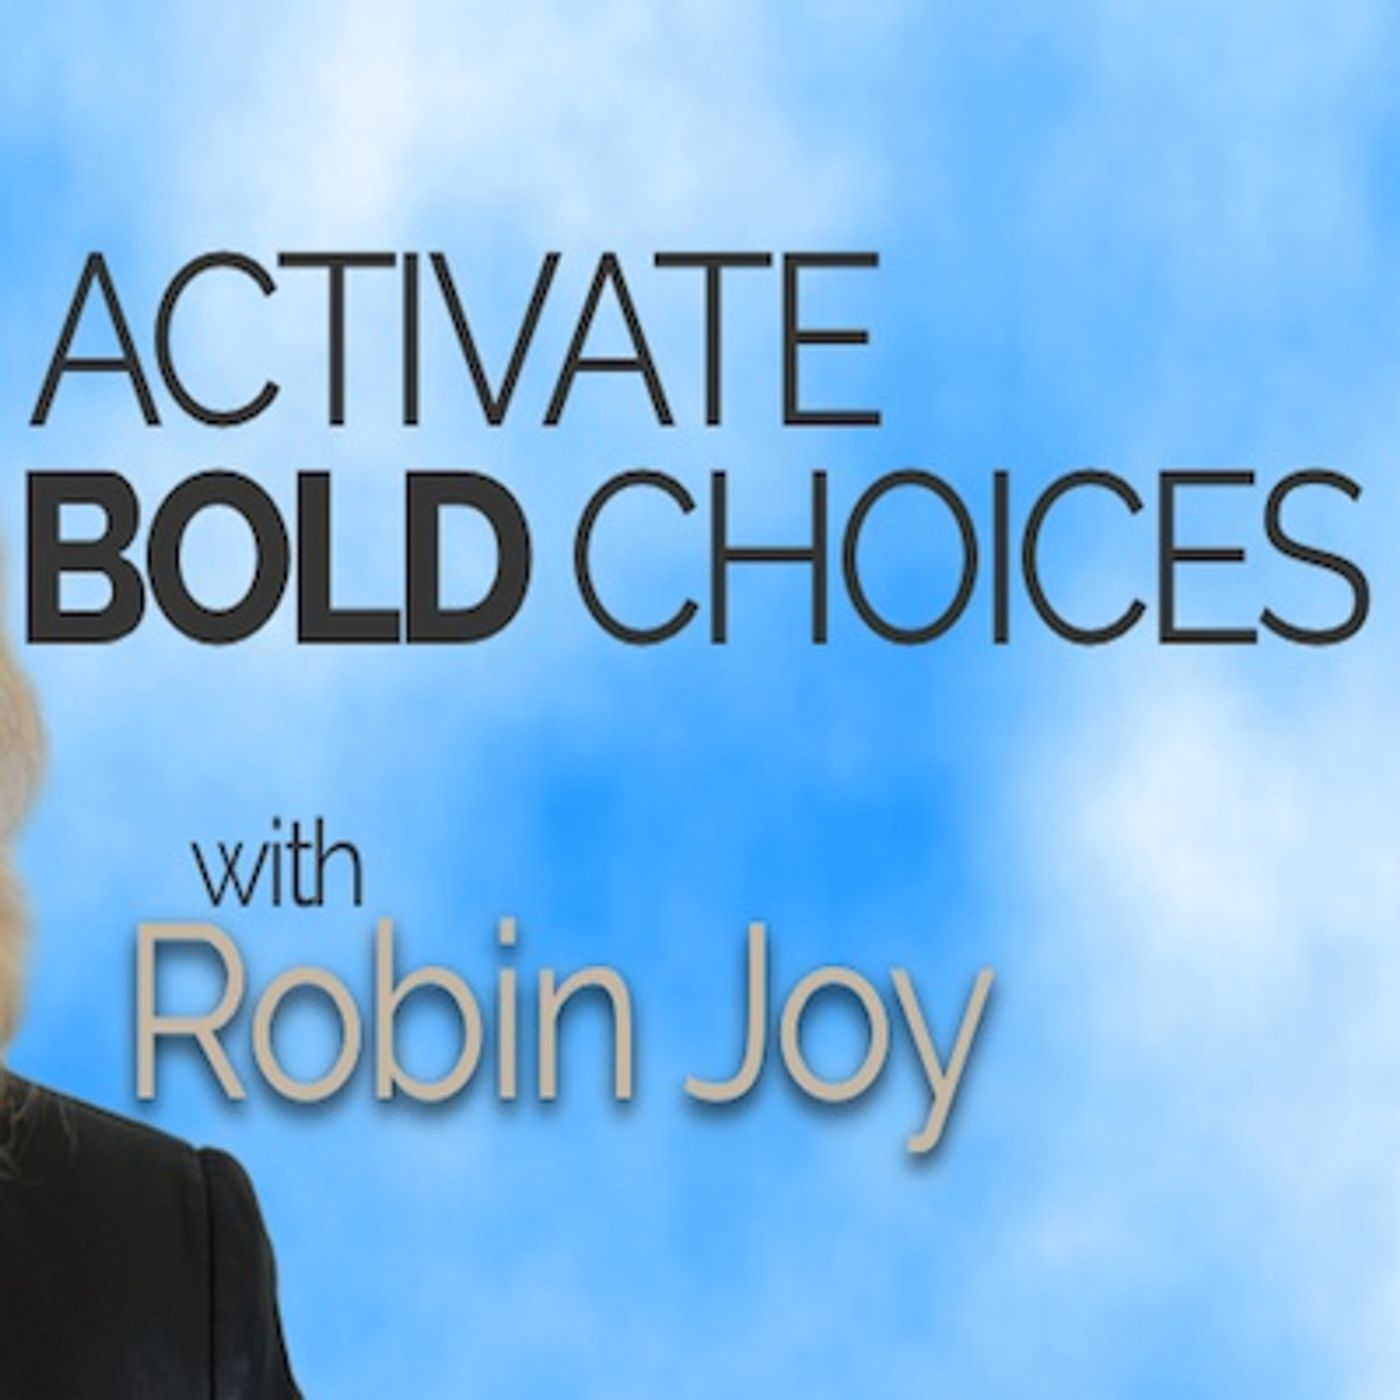 Active Bold Choices